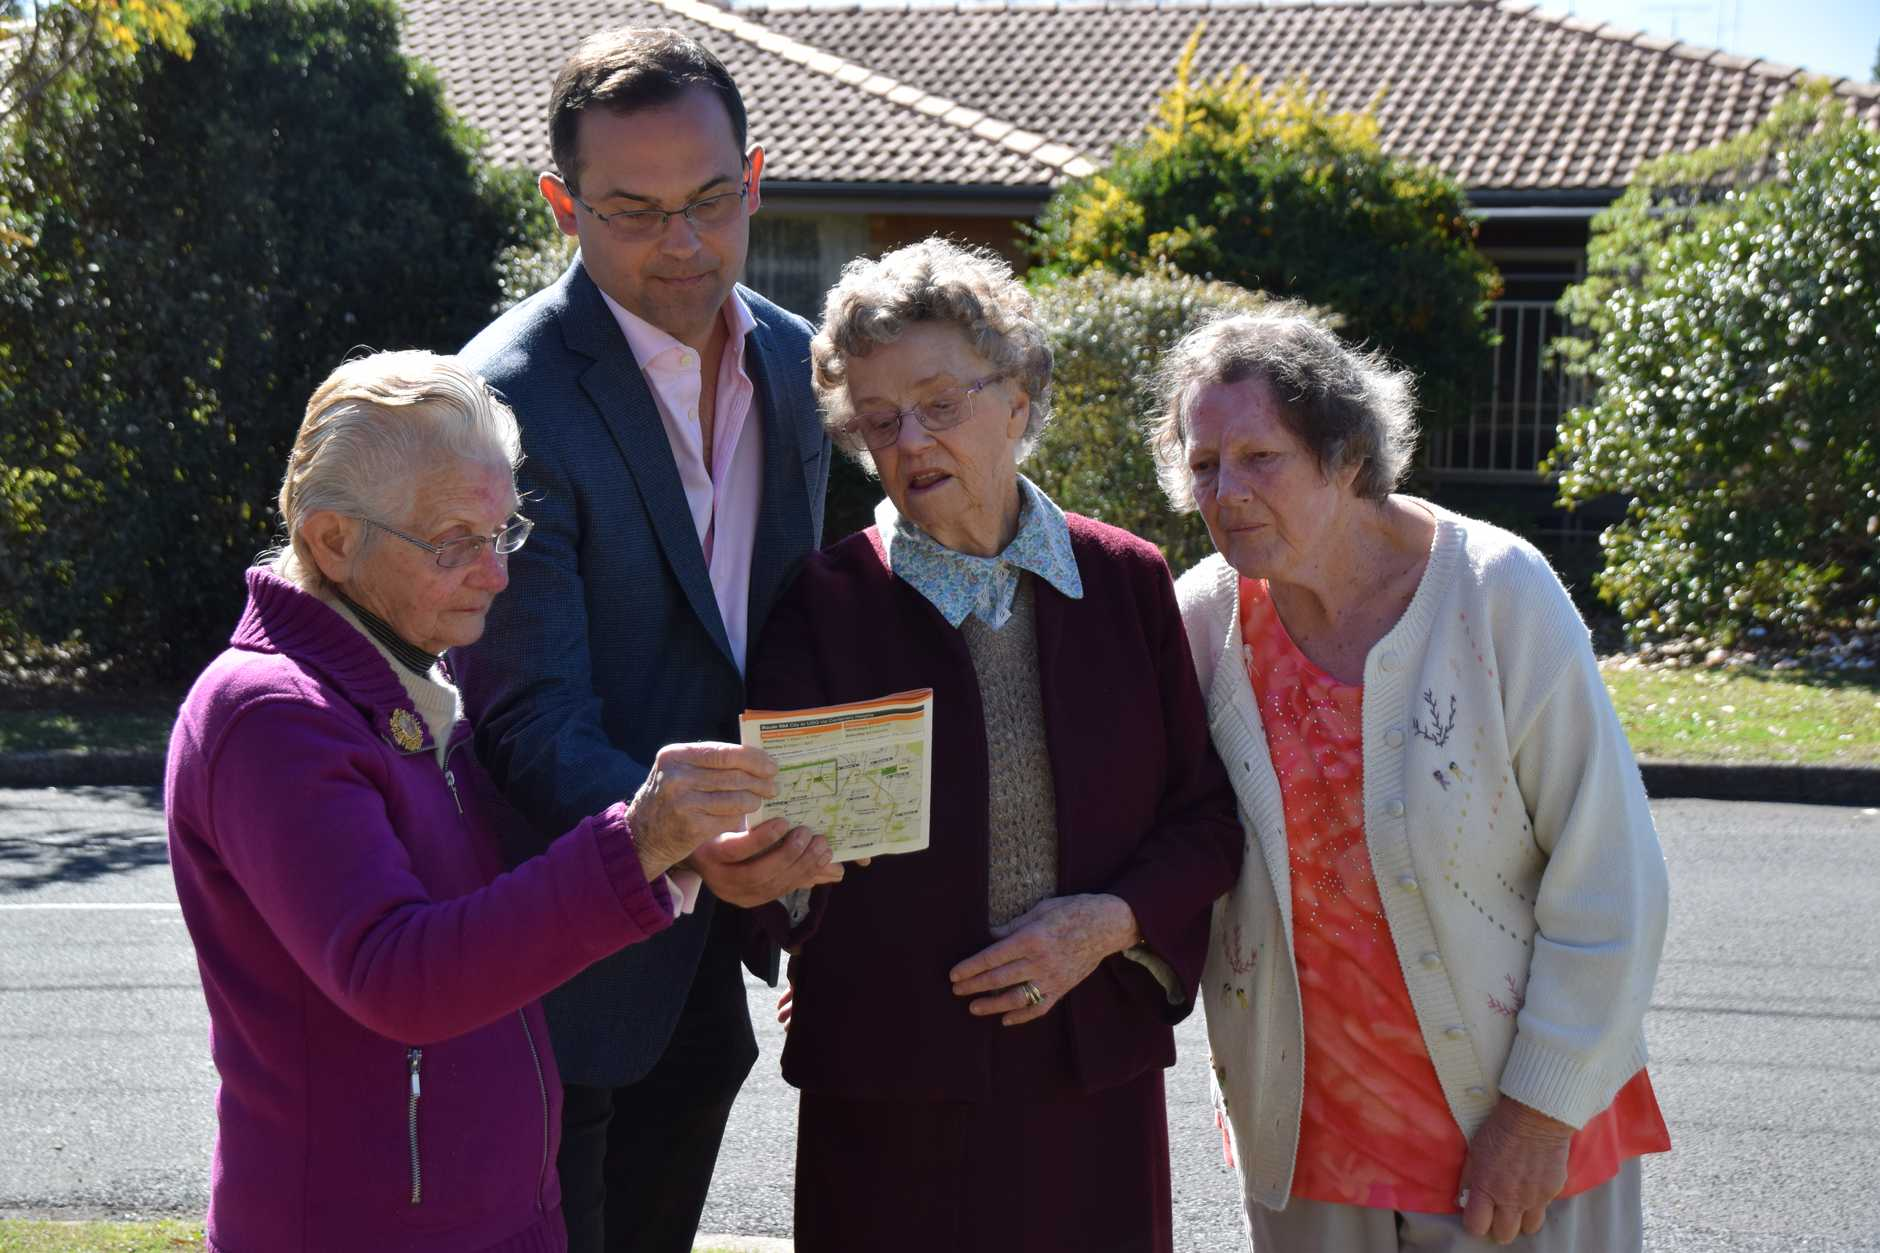 Member for Toowoomba South David Janetzki speaks with pensioners (from left) Gwen Stagg, Rita Hallahan and Nancy Fermor who have lost their independence due to the removal of their Alderley Street bus stop.